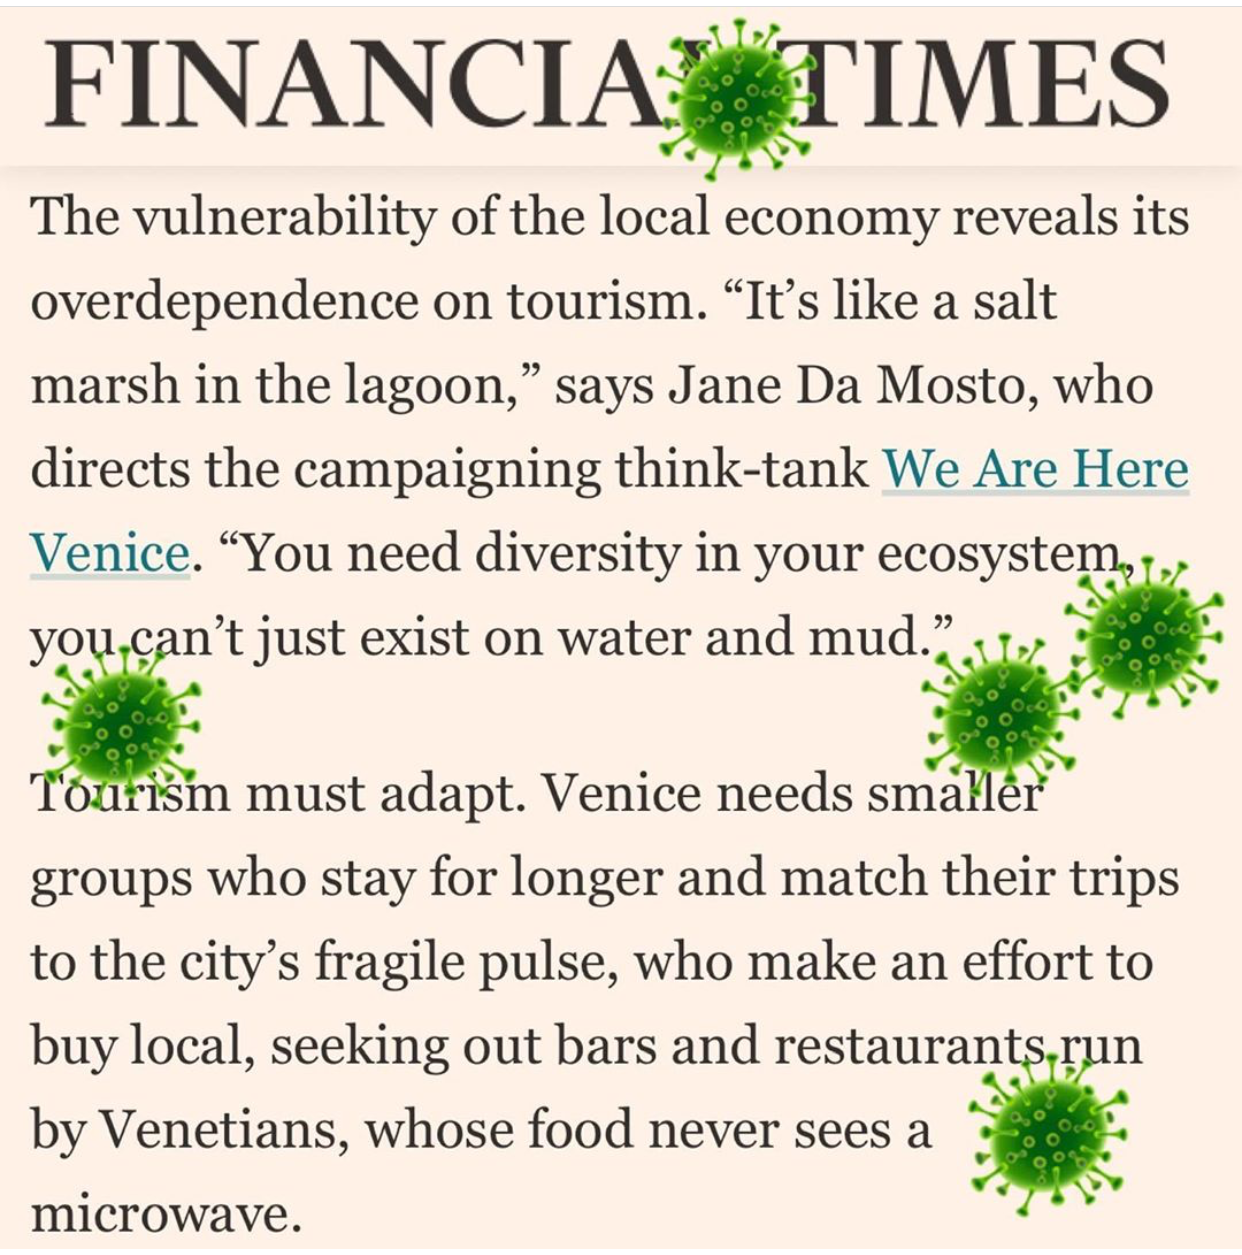 Financial Times 26.02.2020: Coronavirus Stirs The Waters Of Venice